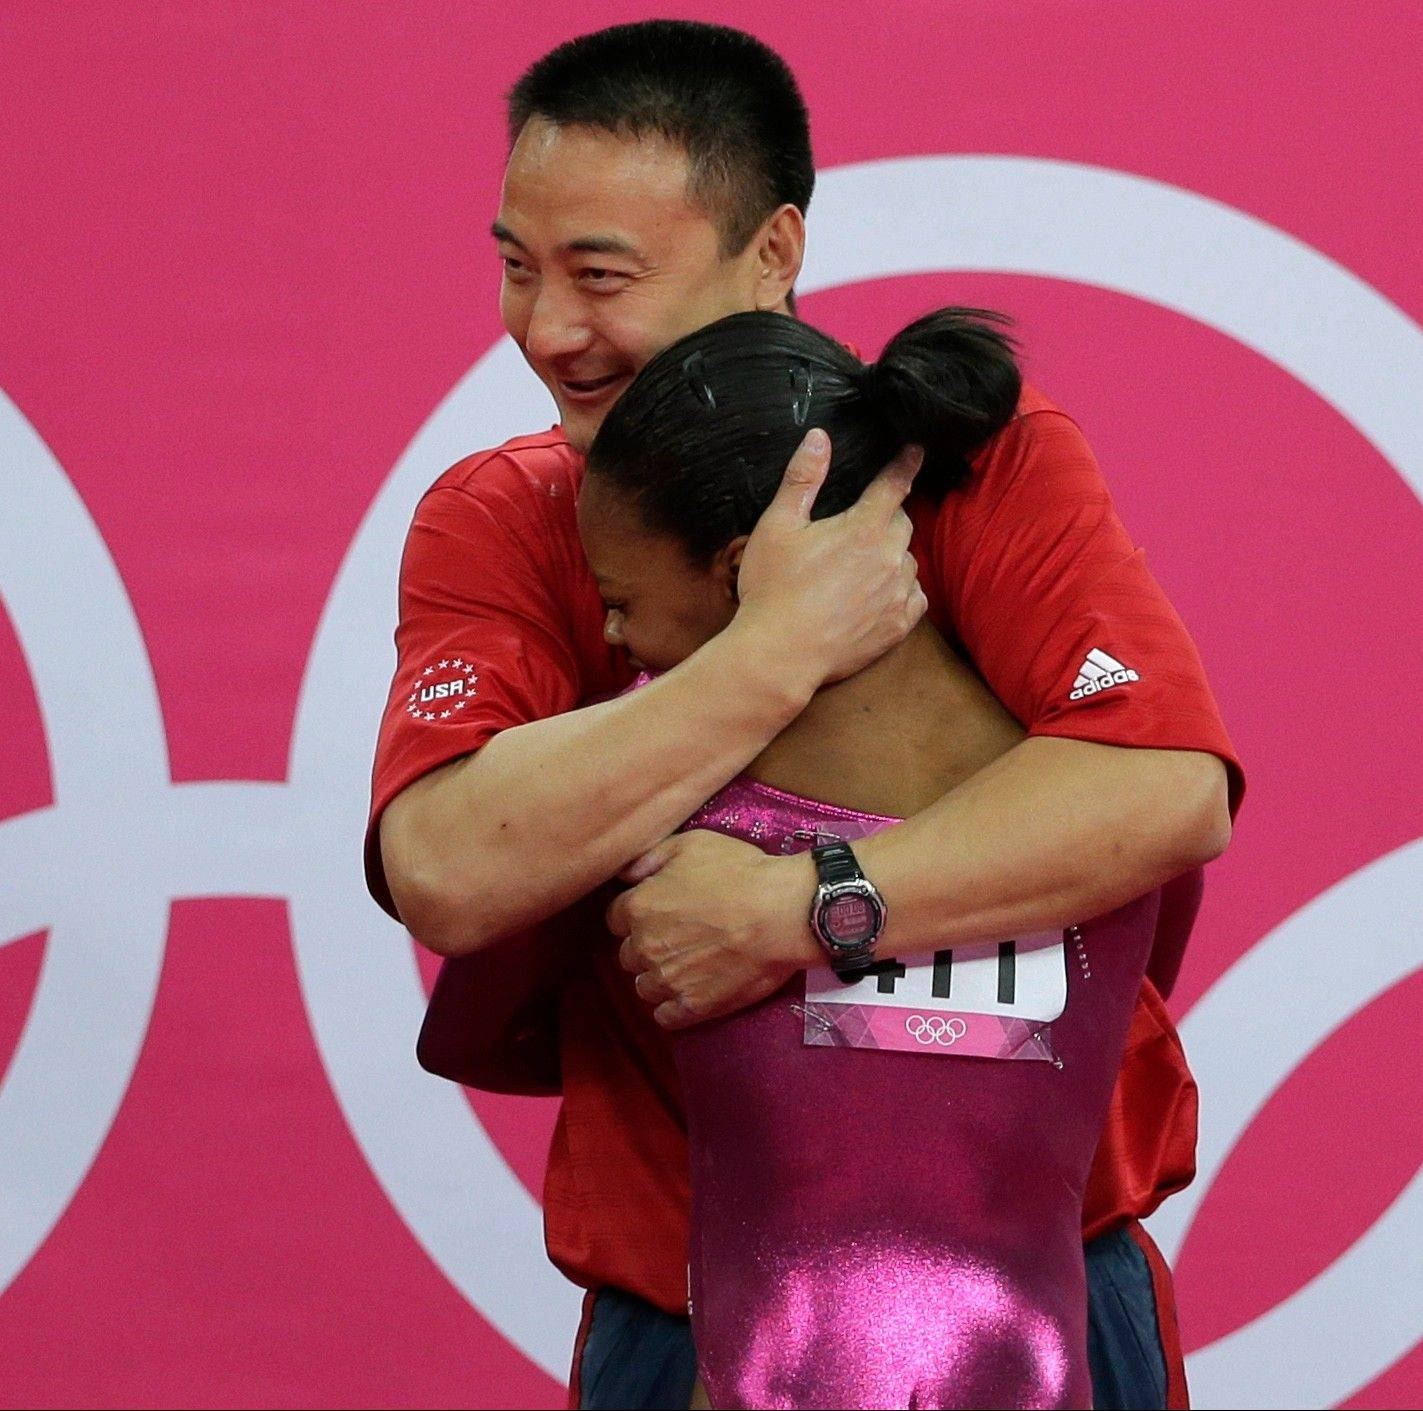 Gymnastics all-around gold medalist Gabby Douglas receives congratulations from coach Liang Chow, who said, �She was sacrificing being with her mom in order to be the best gymnast she can be. That touched my heart.�